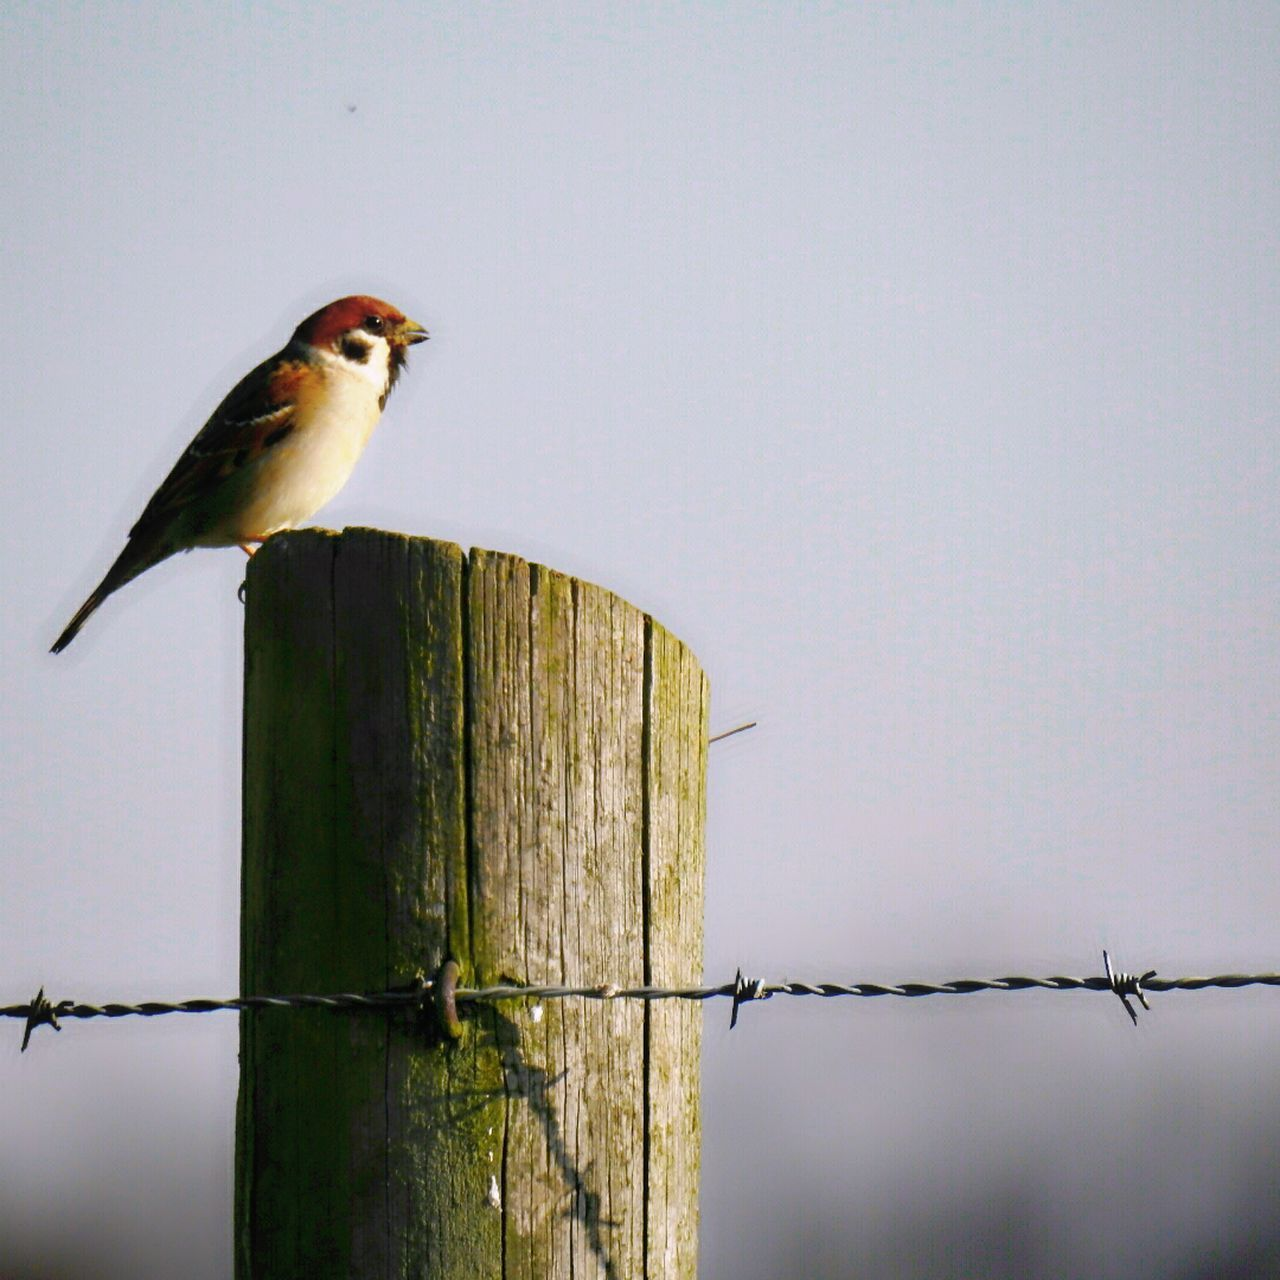 Sparrow Wood - Material Bird Wooden Post One Animal Animal Themes Outdoors Perching Animal Wildlife Sunlight Nature Animals In The Wild Sky Check This Out Close-up Doğa EyeEm Masterclass Turkey Germany Outdoor Photography EyeEm Gallery GERMANY🇩🇪DEUTSCHERLAND@Photography Beautiful Focus On Foreground